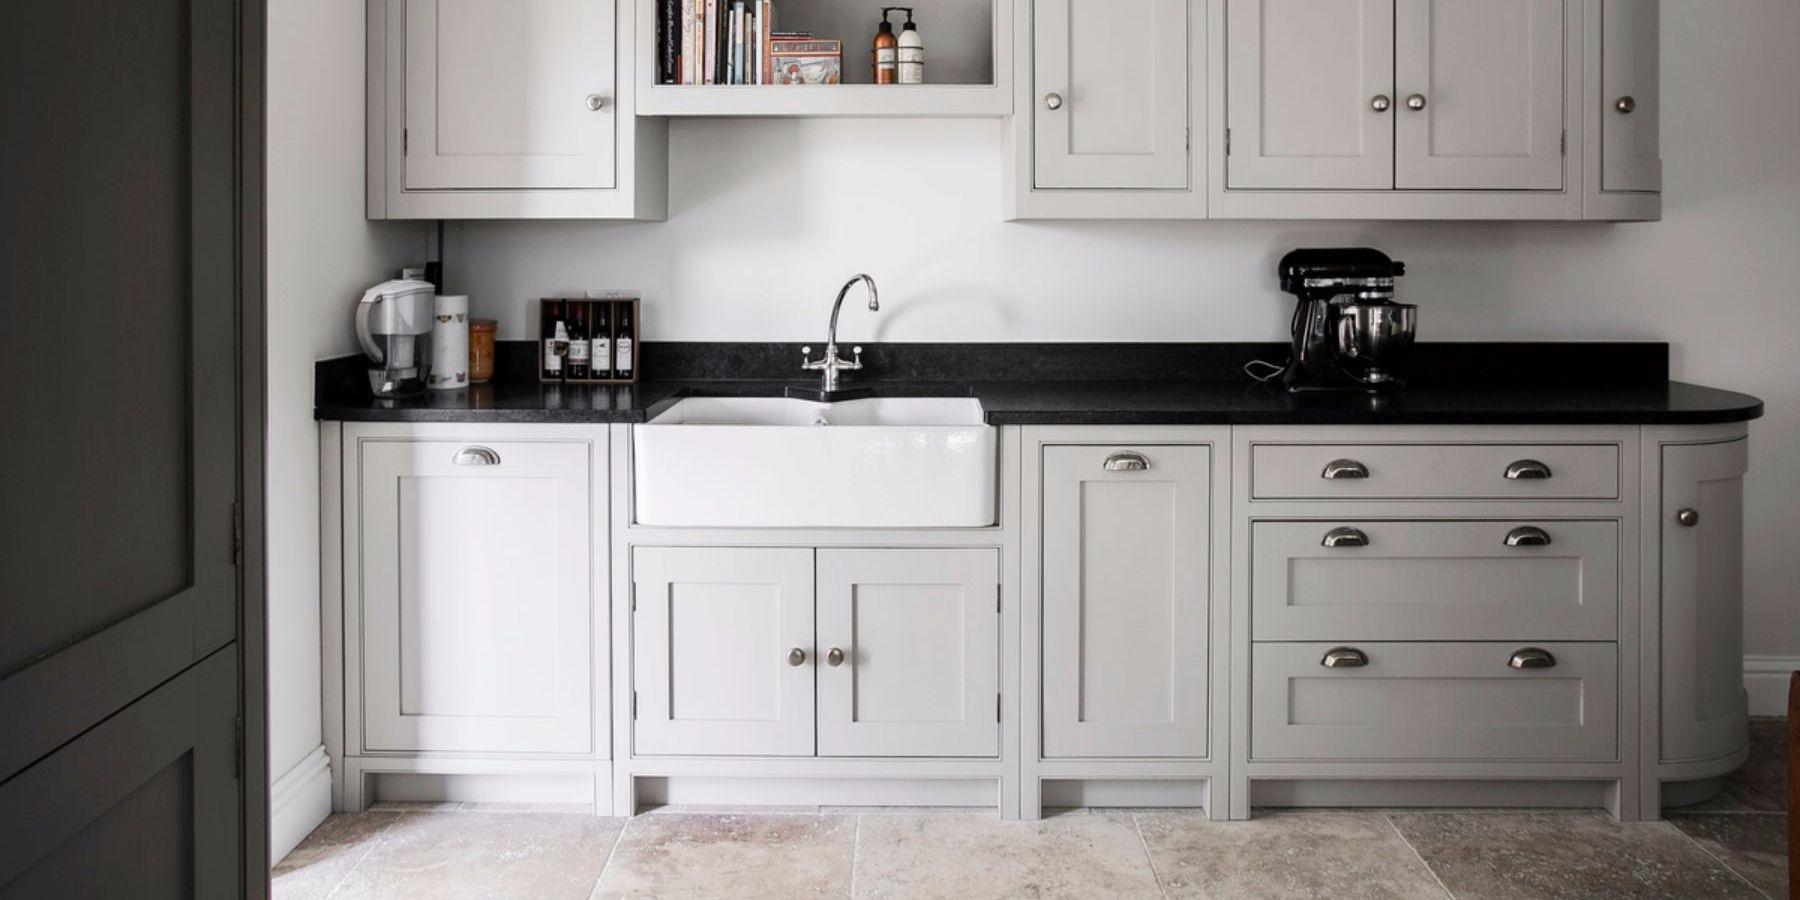 Burlanes Interiors - Freestanding handmade kitchens